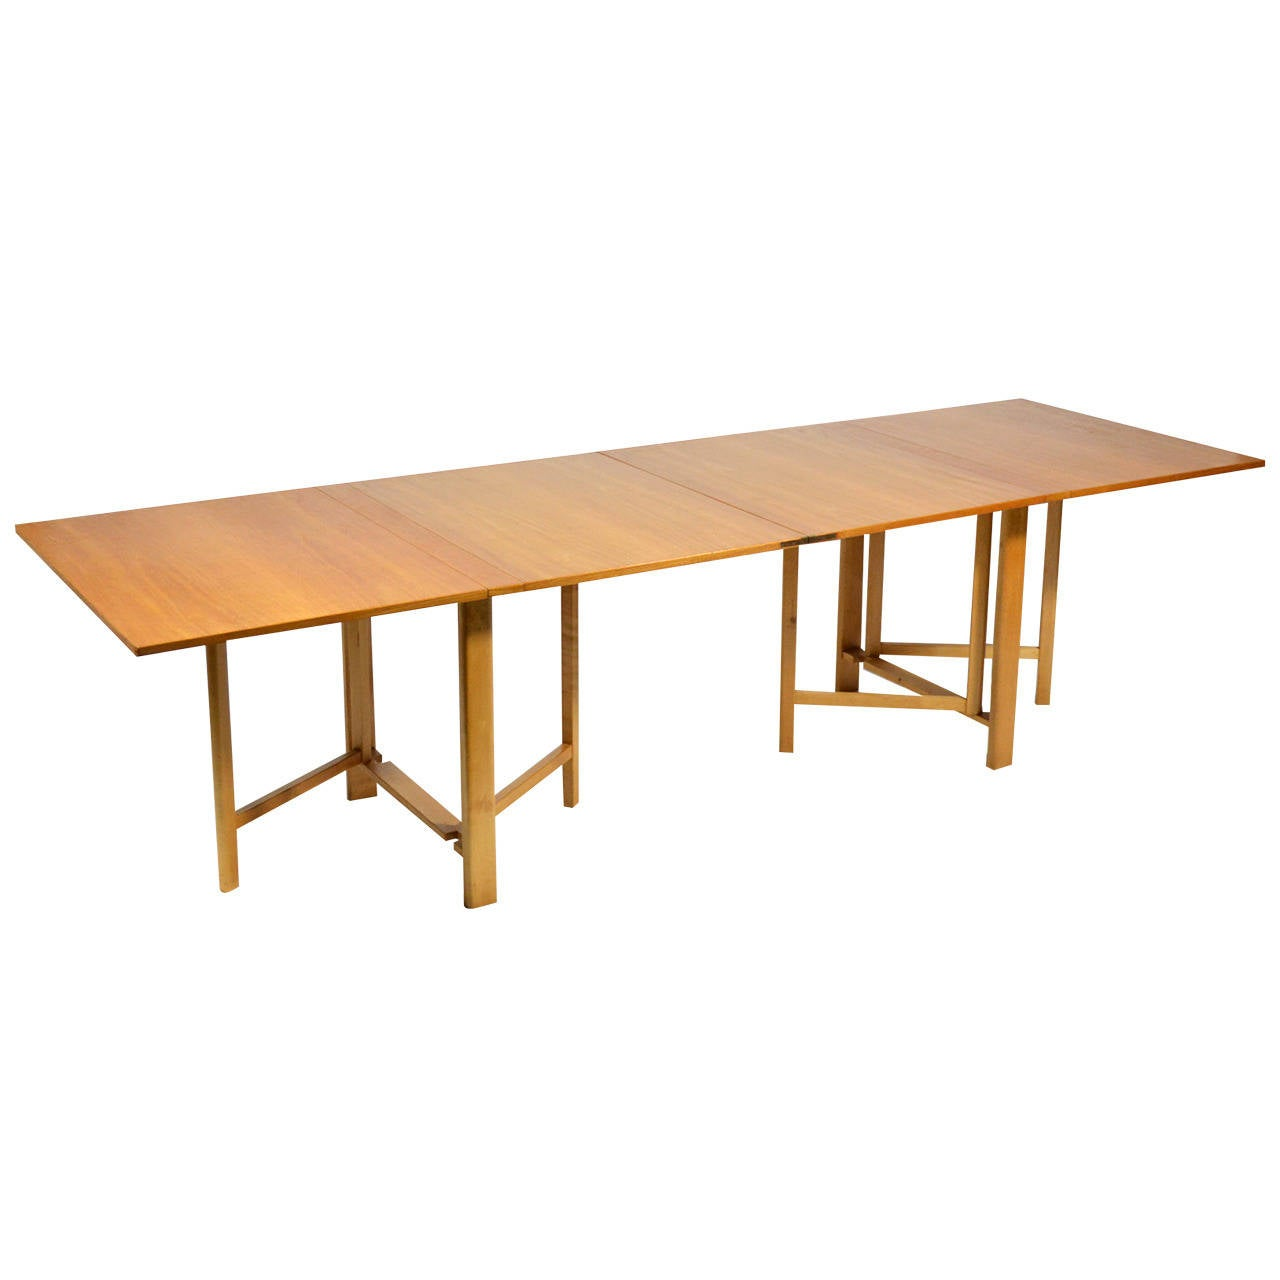 Bruno Mathsson quotMariaquot Expanding or Folding Table at 1stdibs : 2416742l from www.1stdibs.com size 1280 x 1280 jpeg 49kB